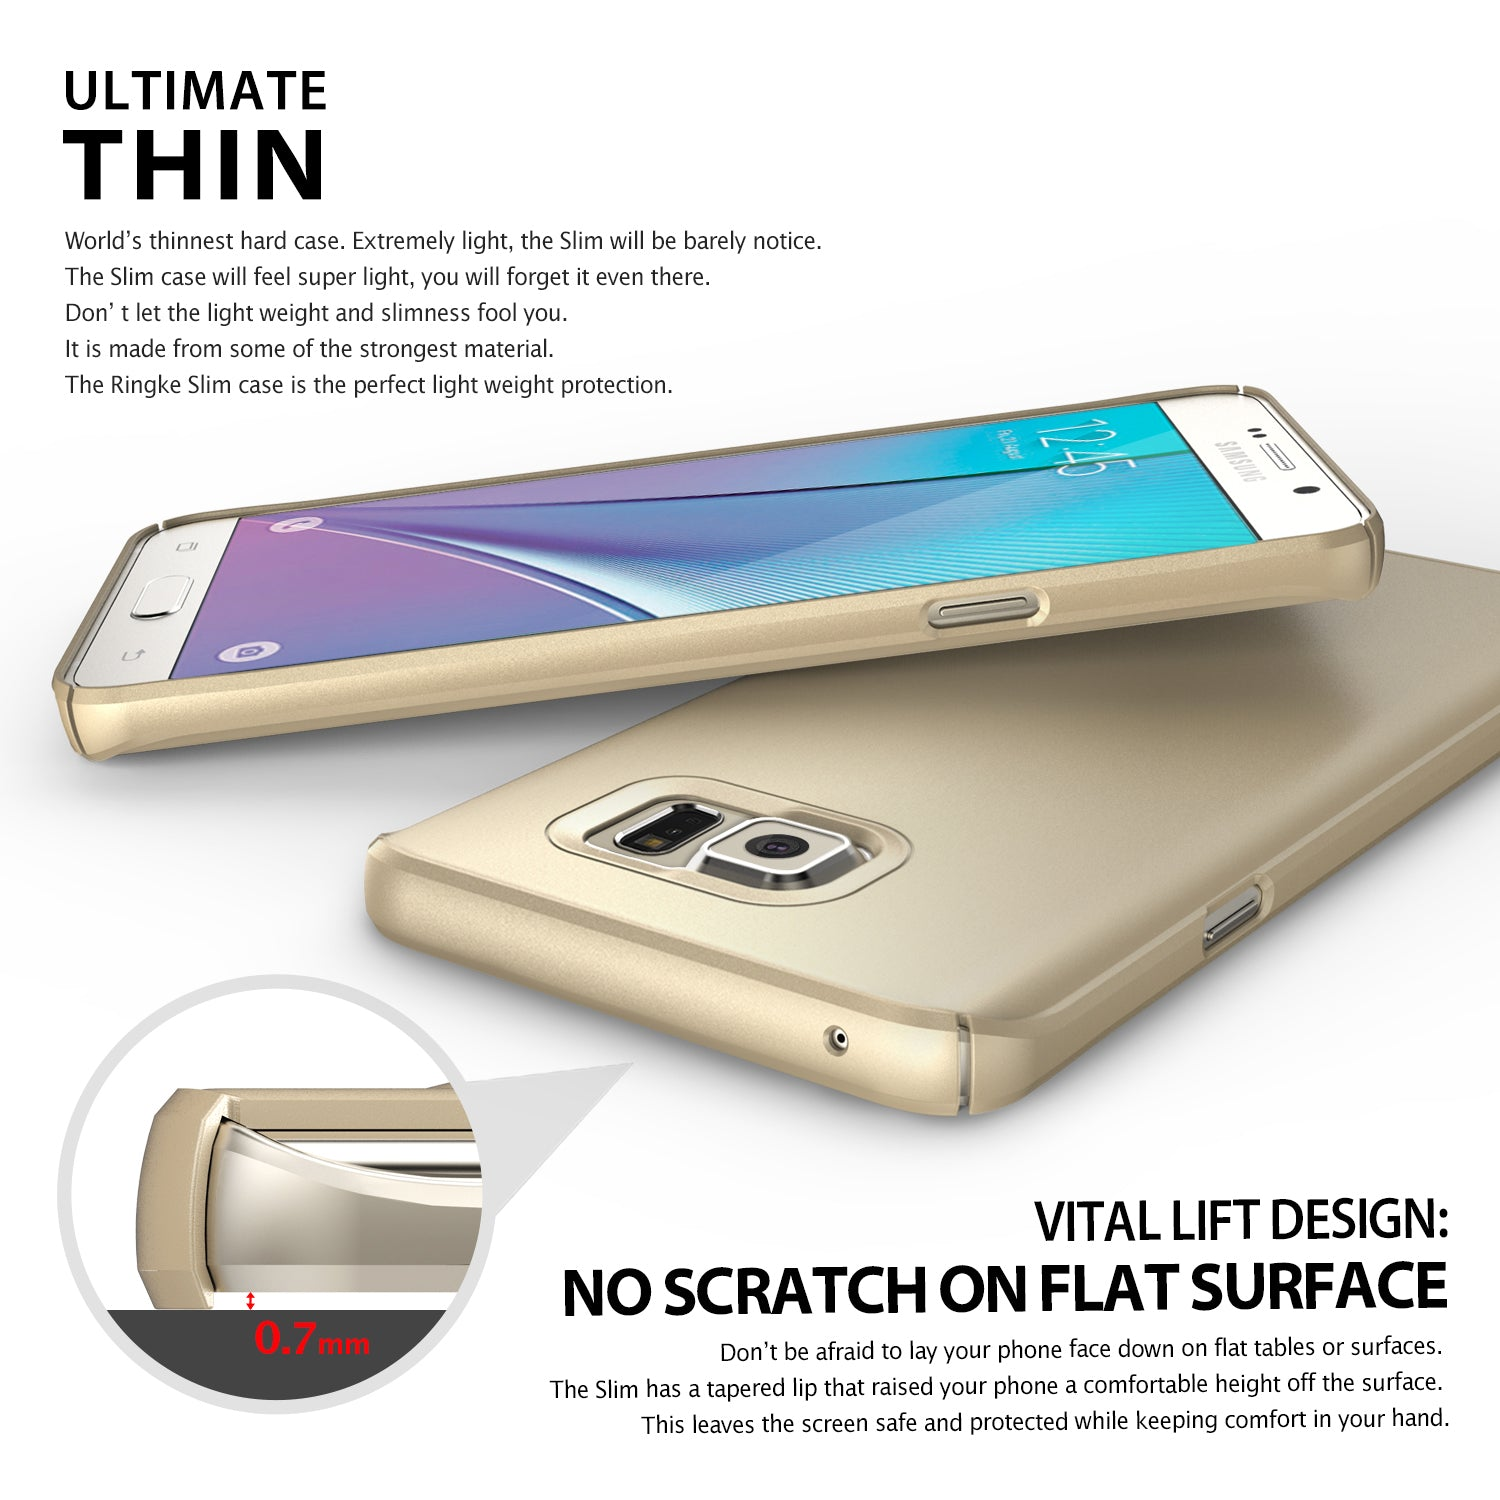 ultimate thin 0.7mm with no scratch on the screen on flat surface thanks to vital lift design